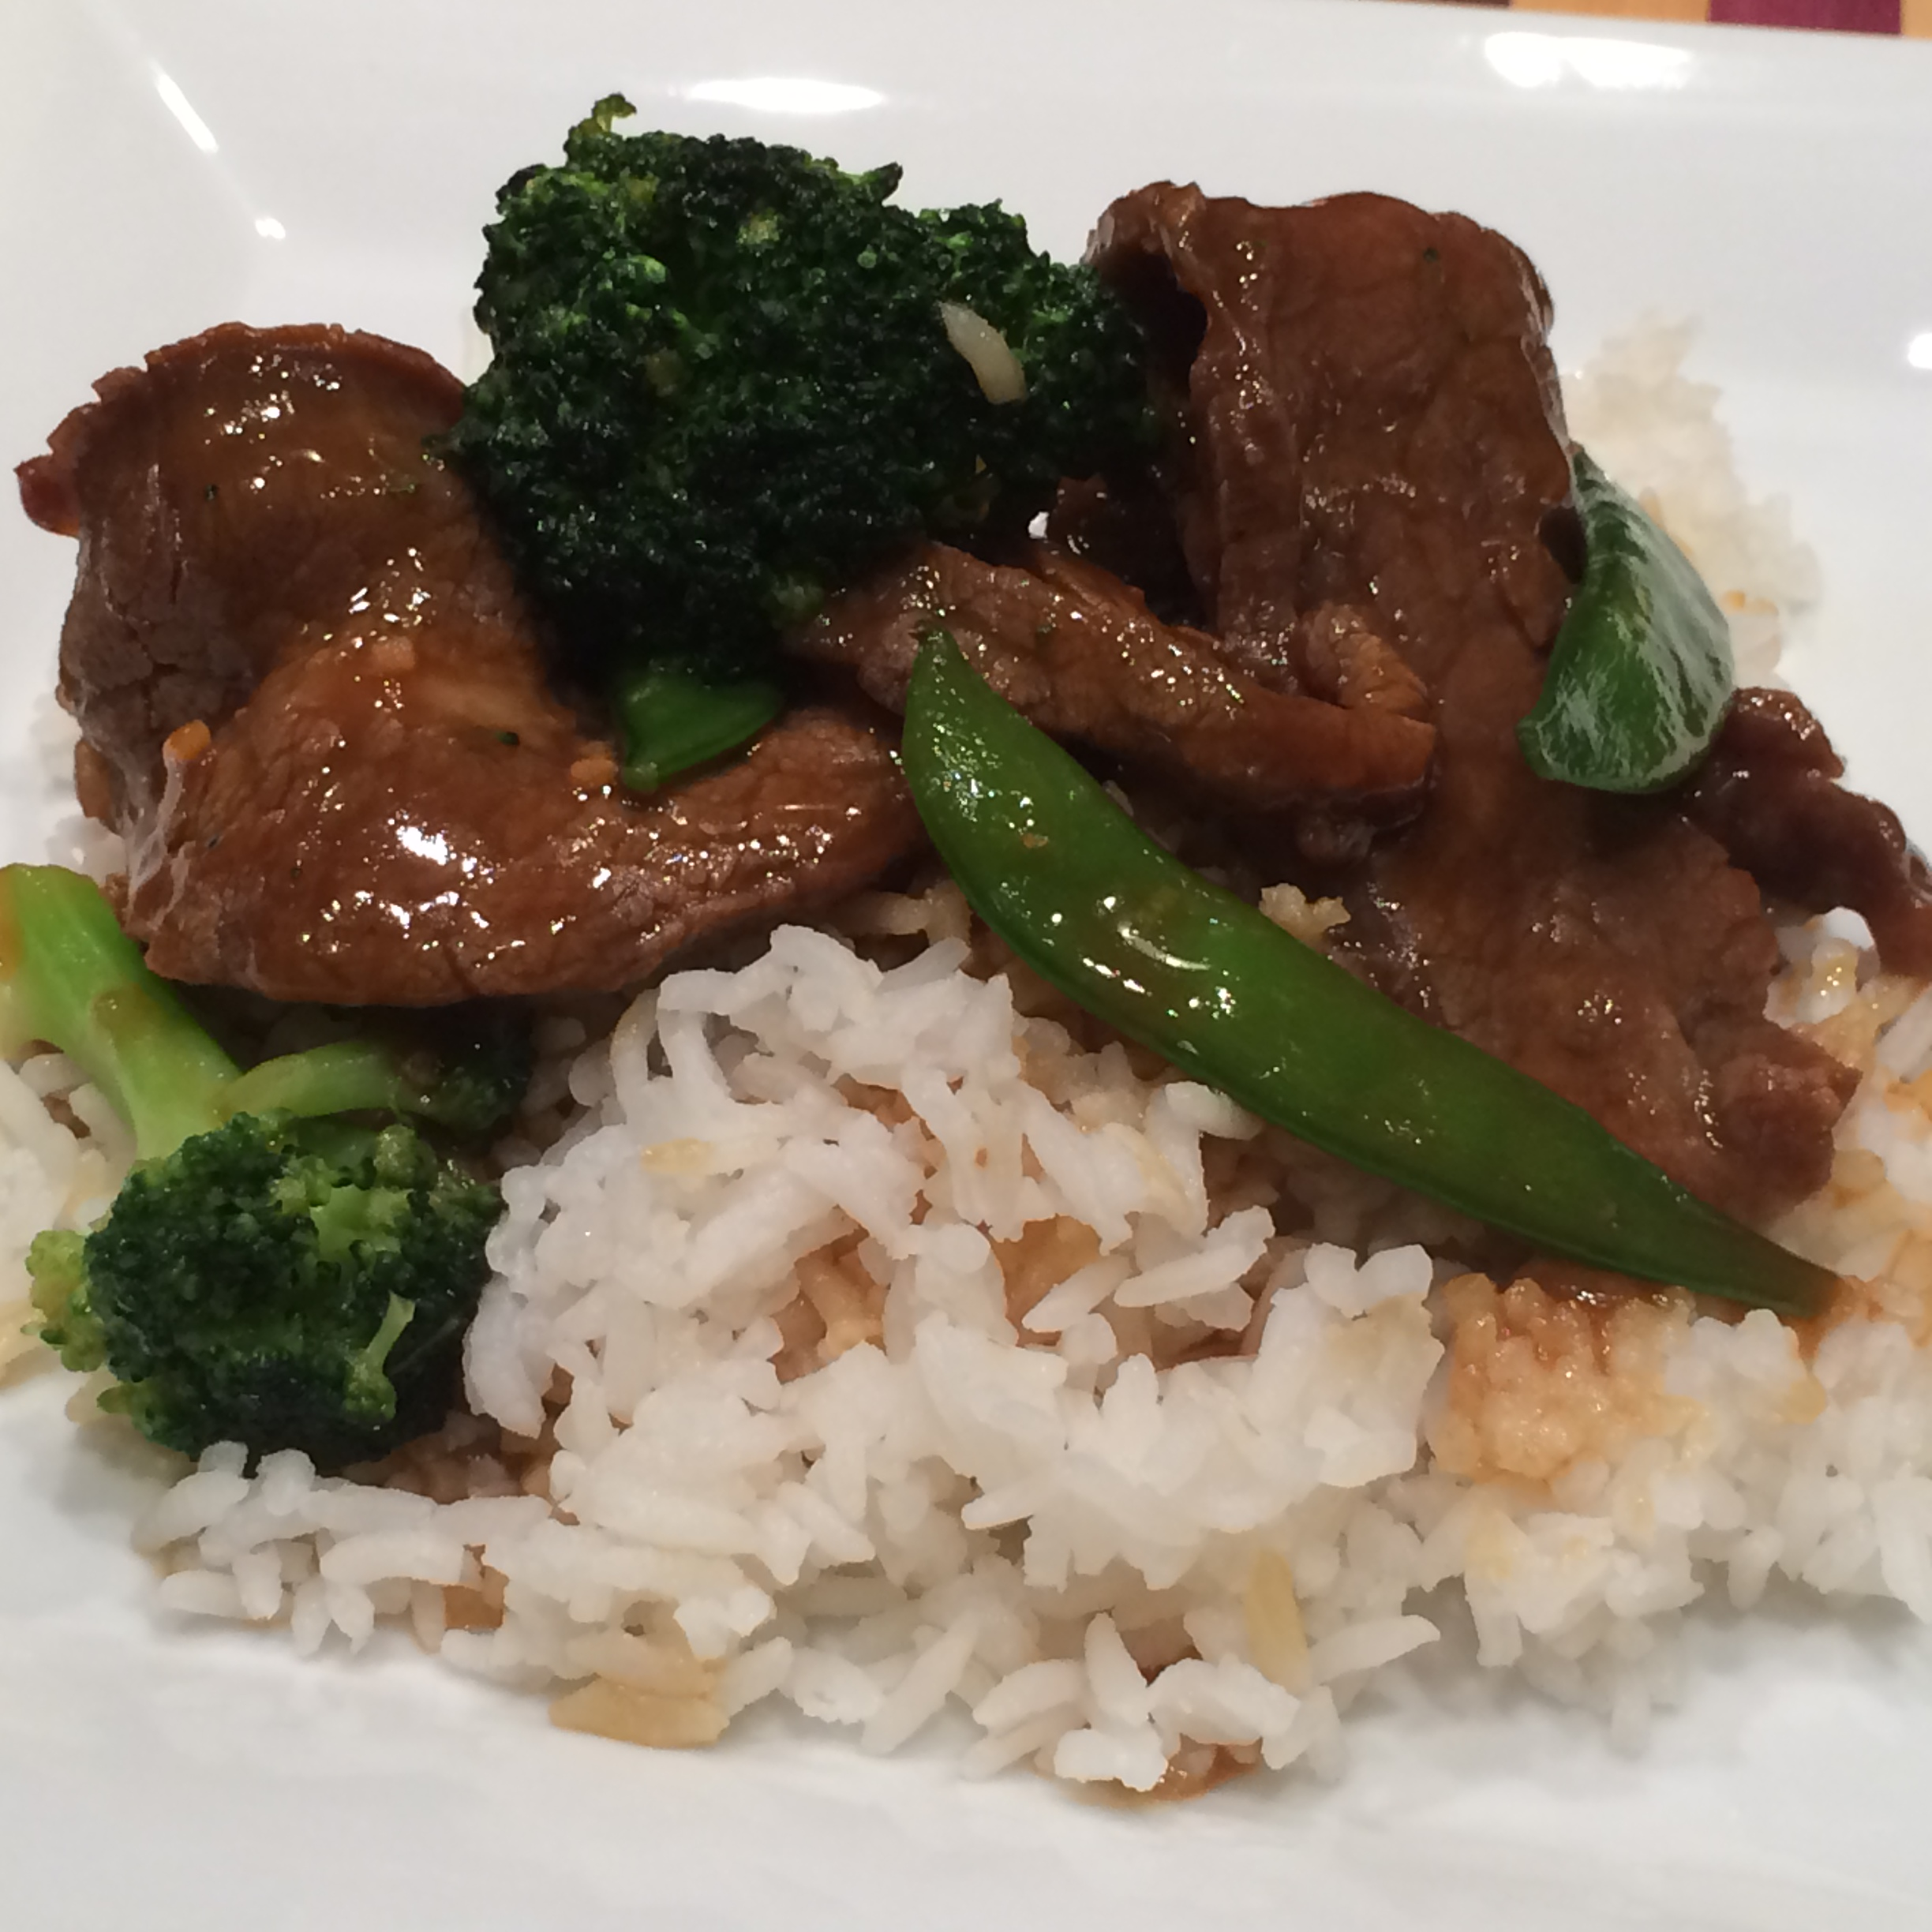 https://sweetteawithlemon.com/beef-and-broccoli-with-snow-peas/